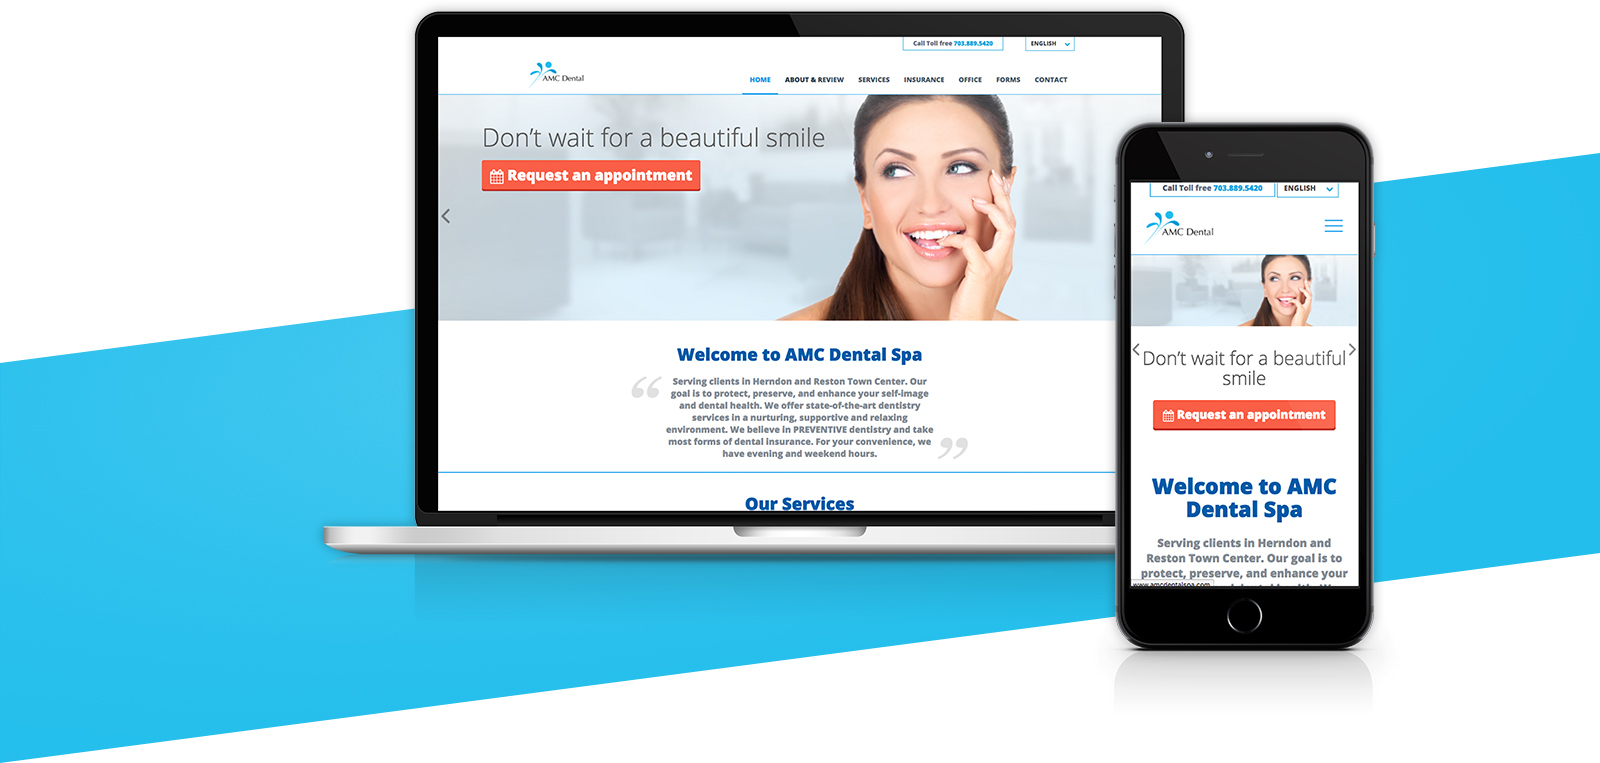 AMC Dental Spa image